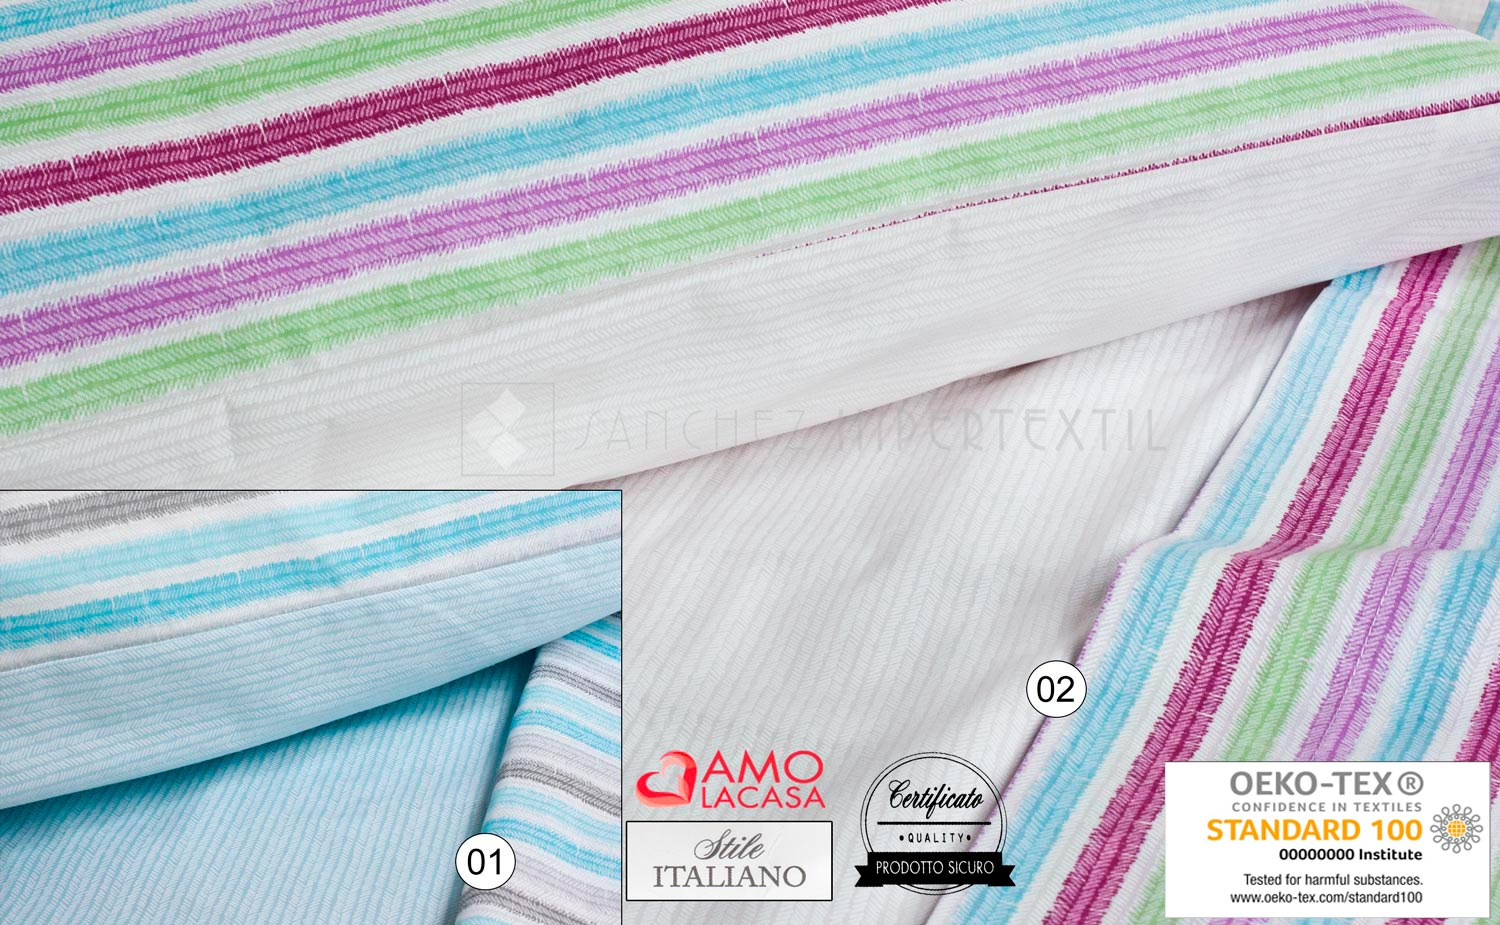 Bed linen set 3 pieces CARIT by Amo la Casa